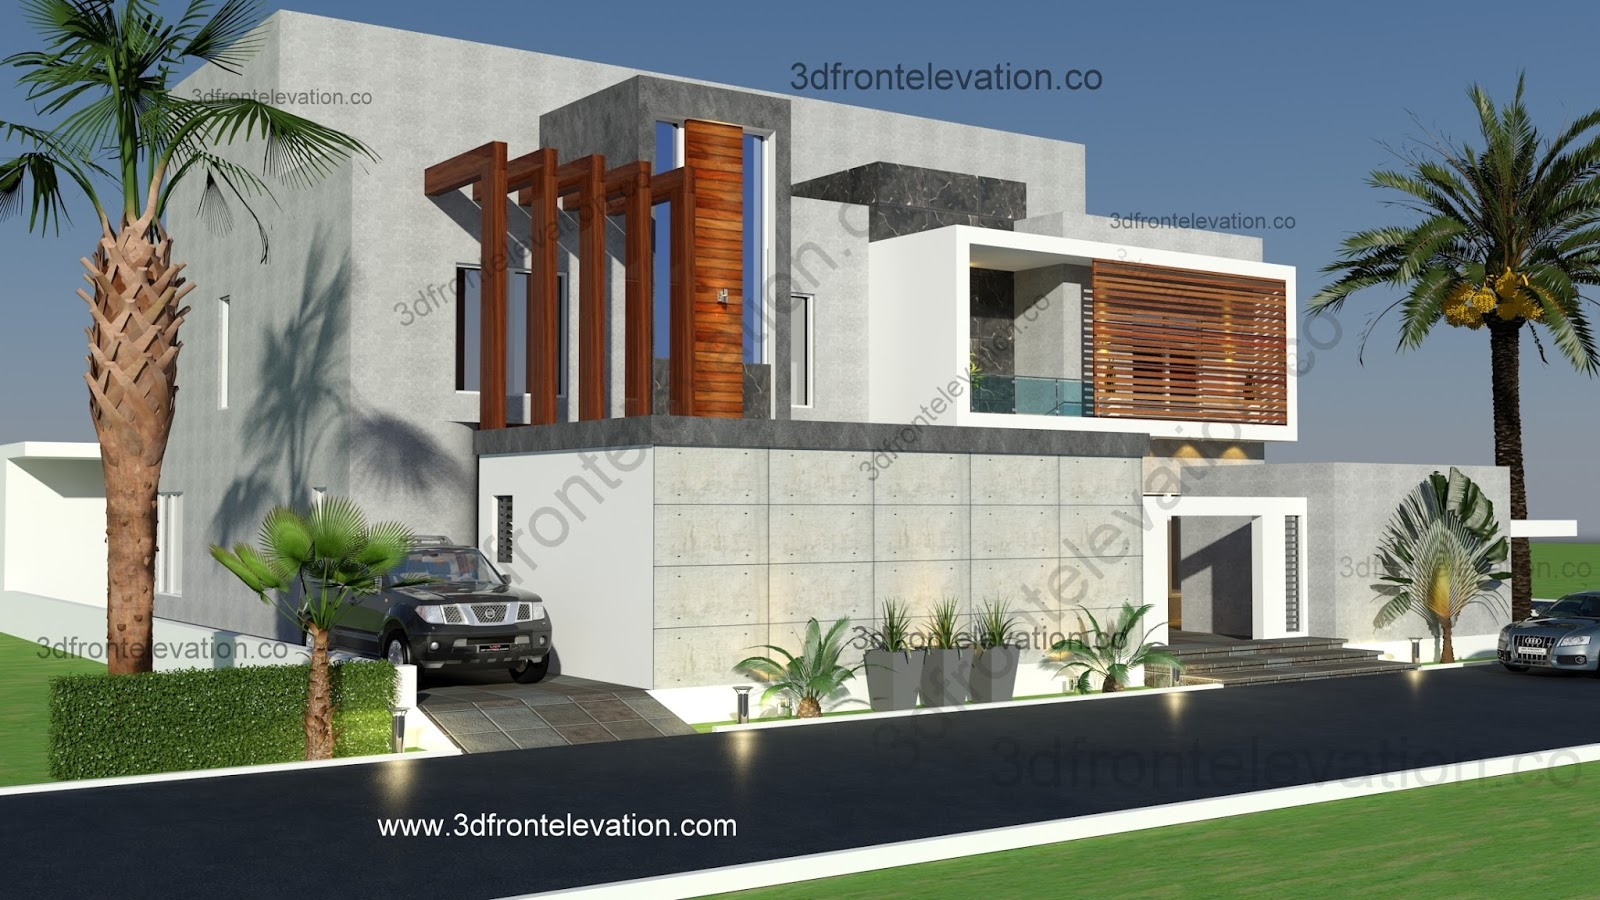 Front Elevation House Dubai : D front elevation saudi oman muscat qatar dubai